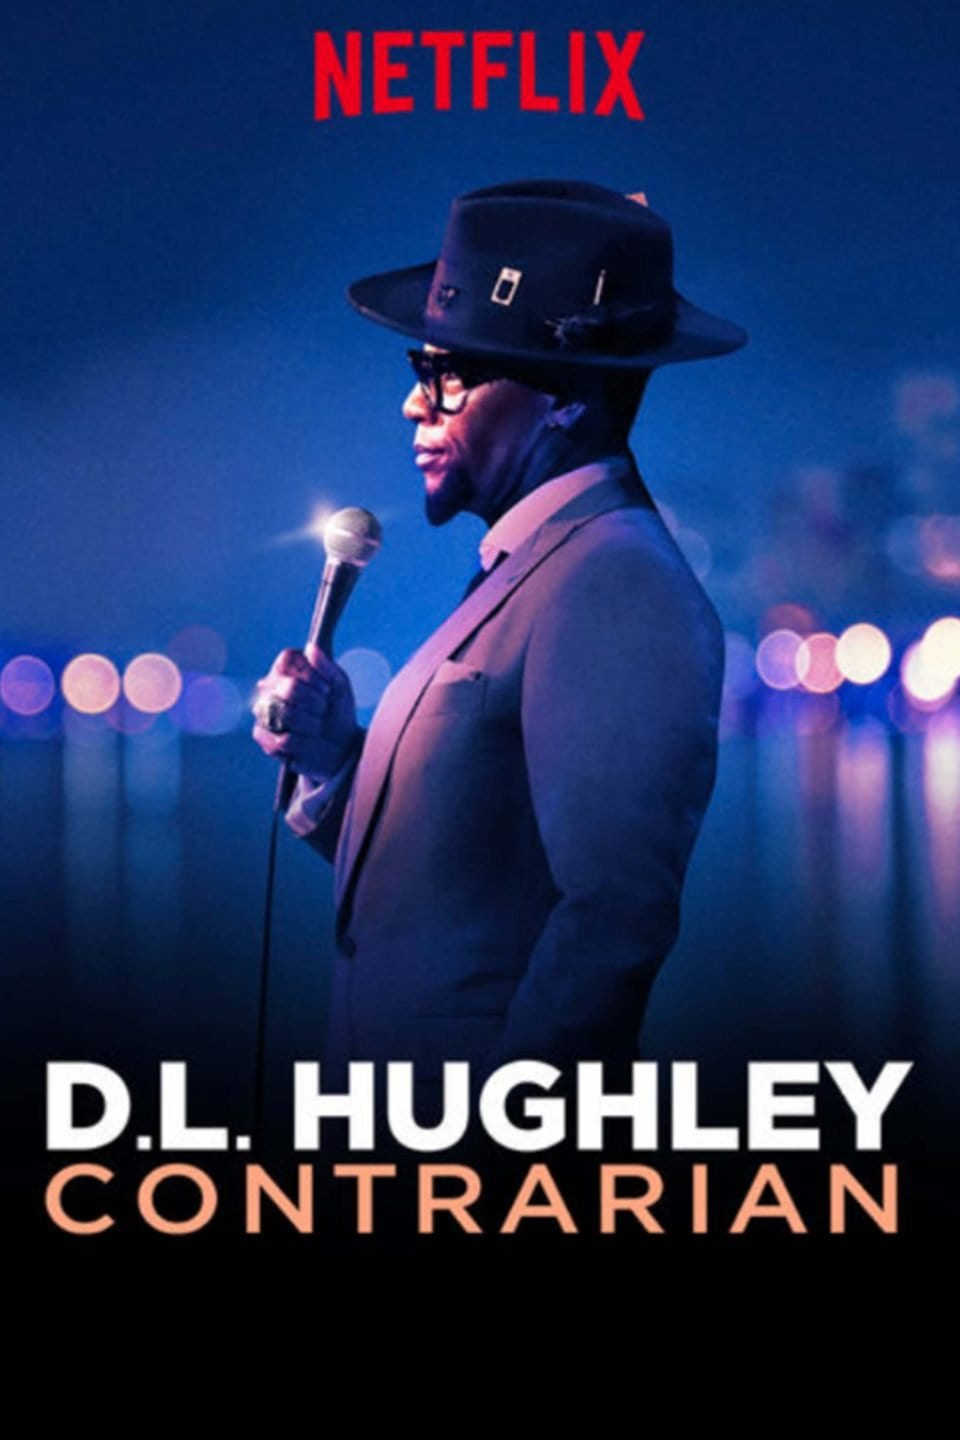 DL Hughley Contrarian Vertical